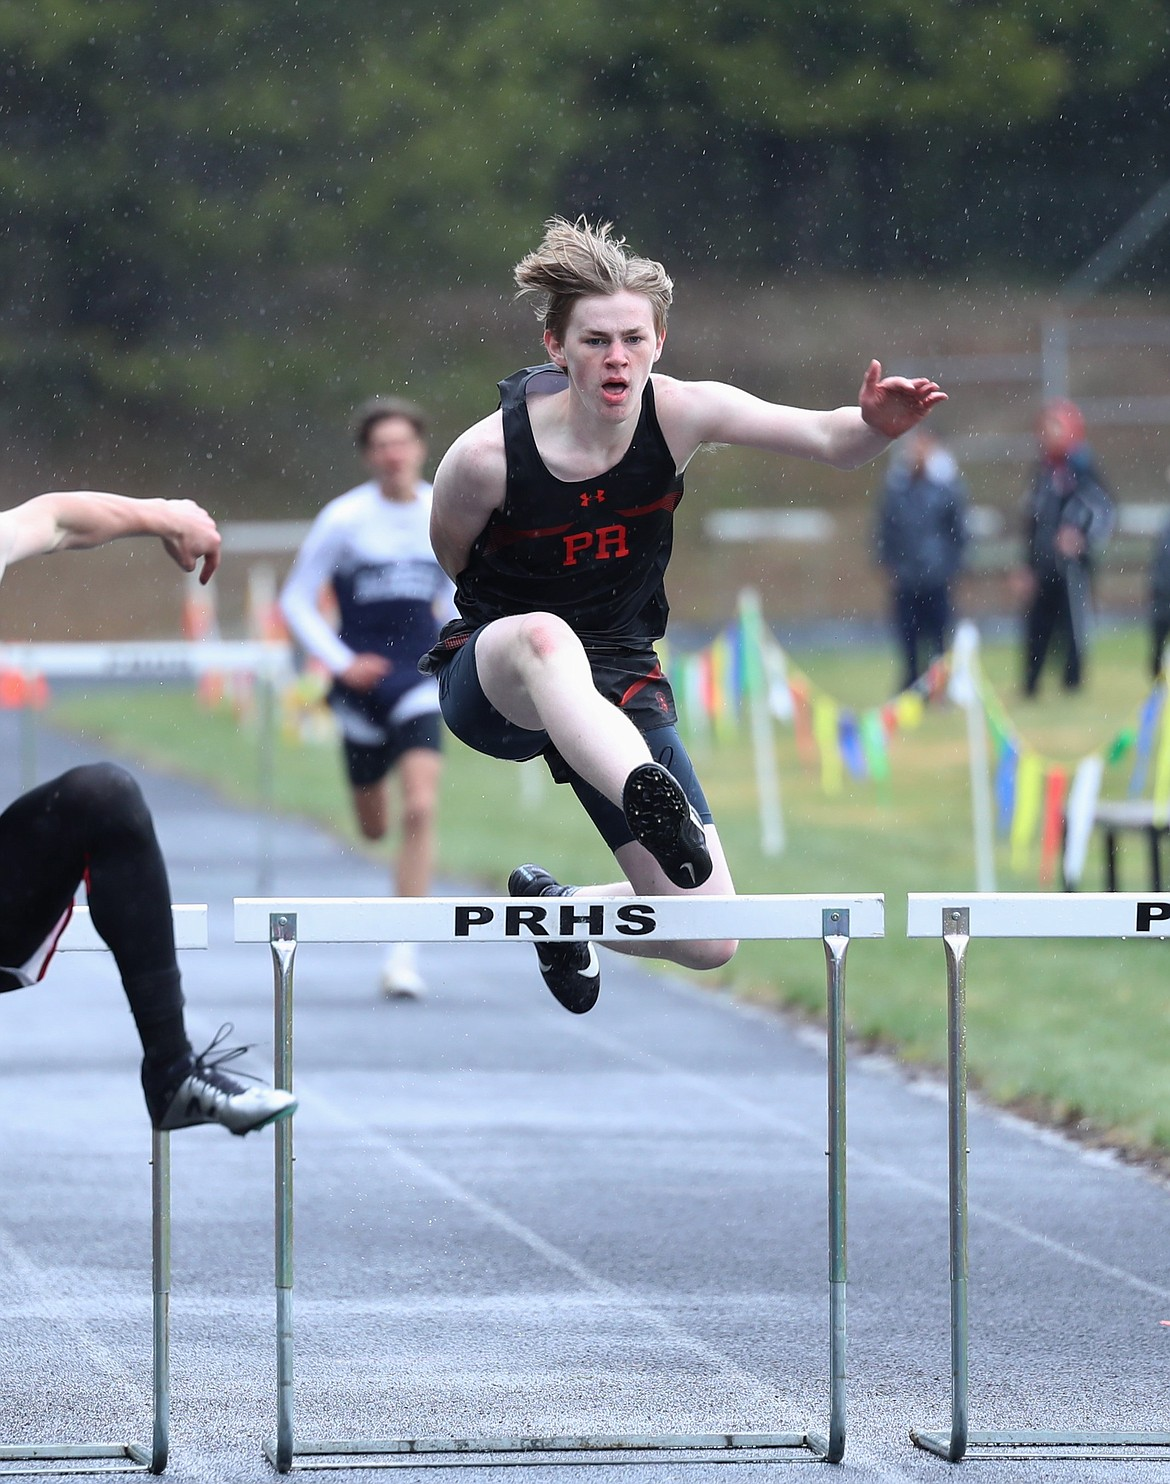 Shane Gamber clears the final hurdle in the 300 hurdles on Saturday. He placed second in the event with a PR.